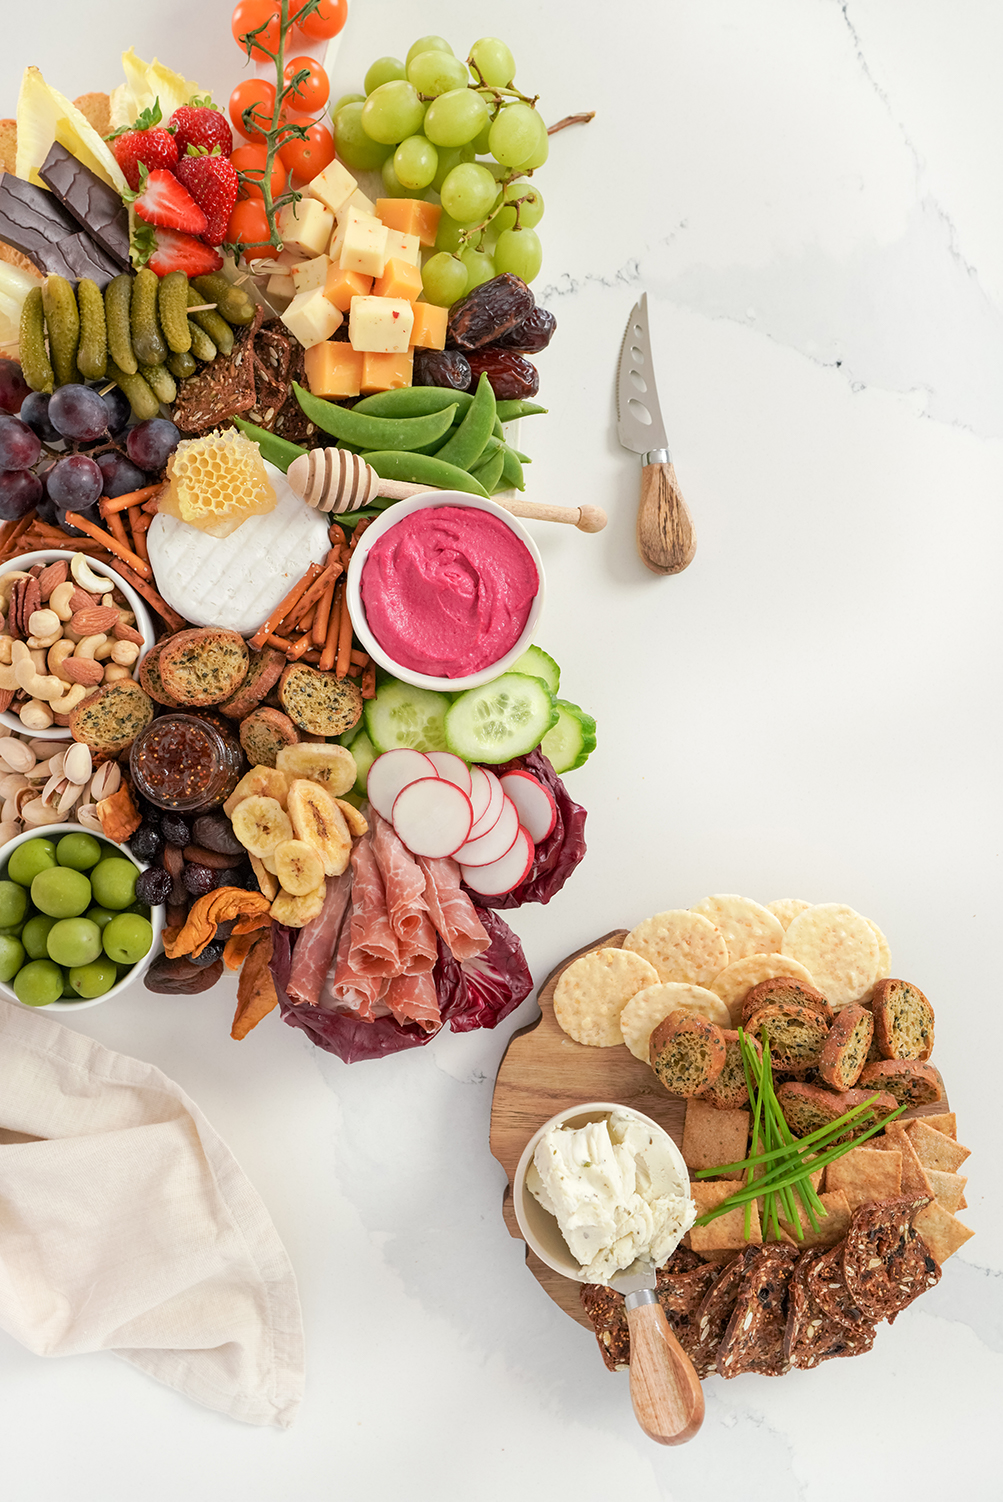 cheese, veggies, fruits and crackers on a wooden board